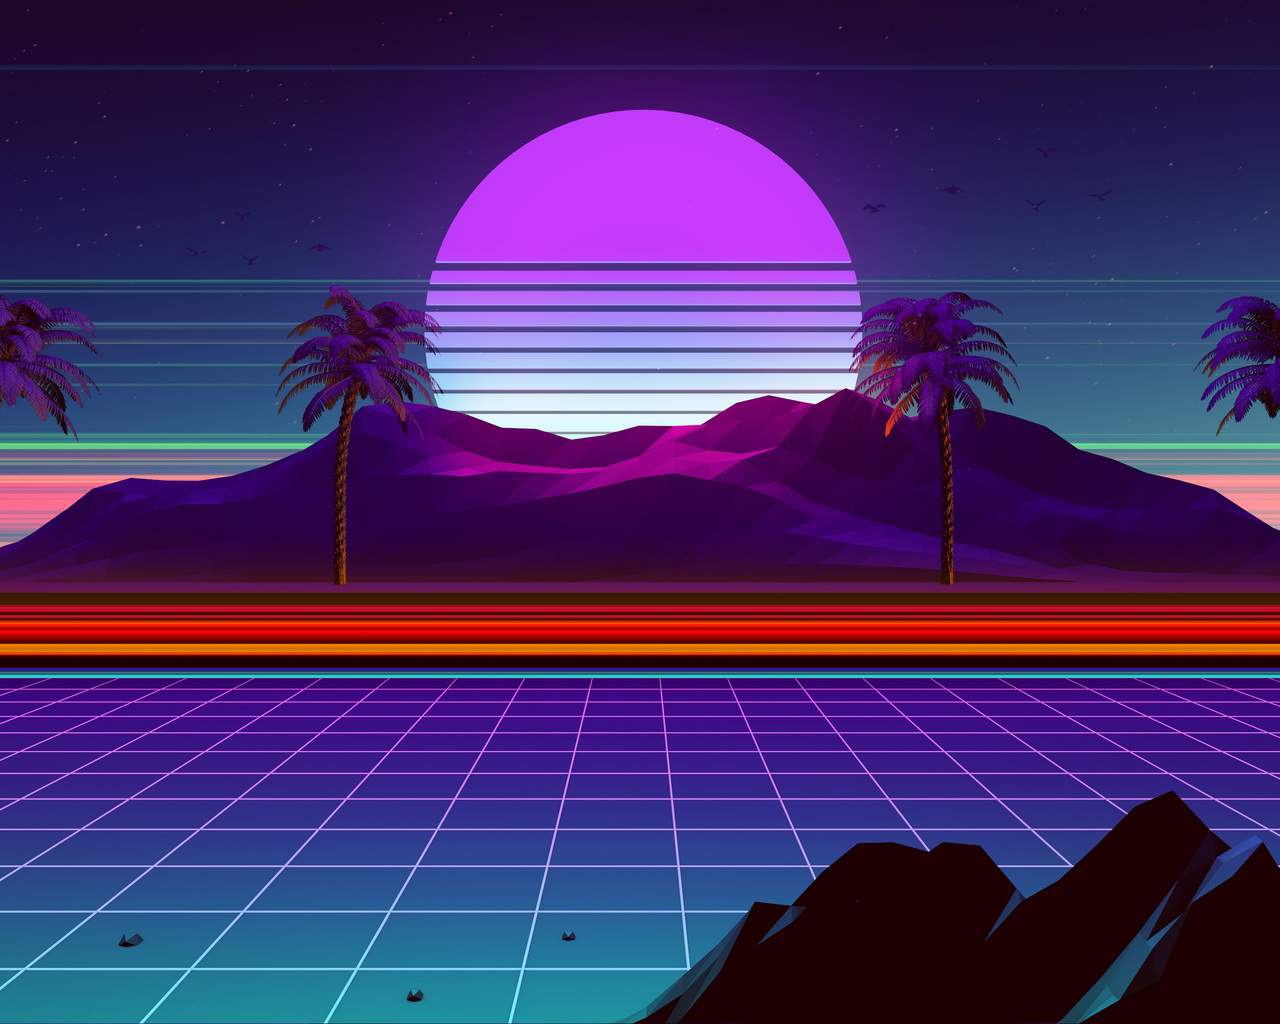 1280x1024 Retro Wave 4k 1280x1024 Resolution Hd 4k Wallpapers Images Backgrounds Photos And Pictures